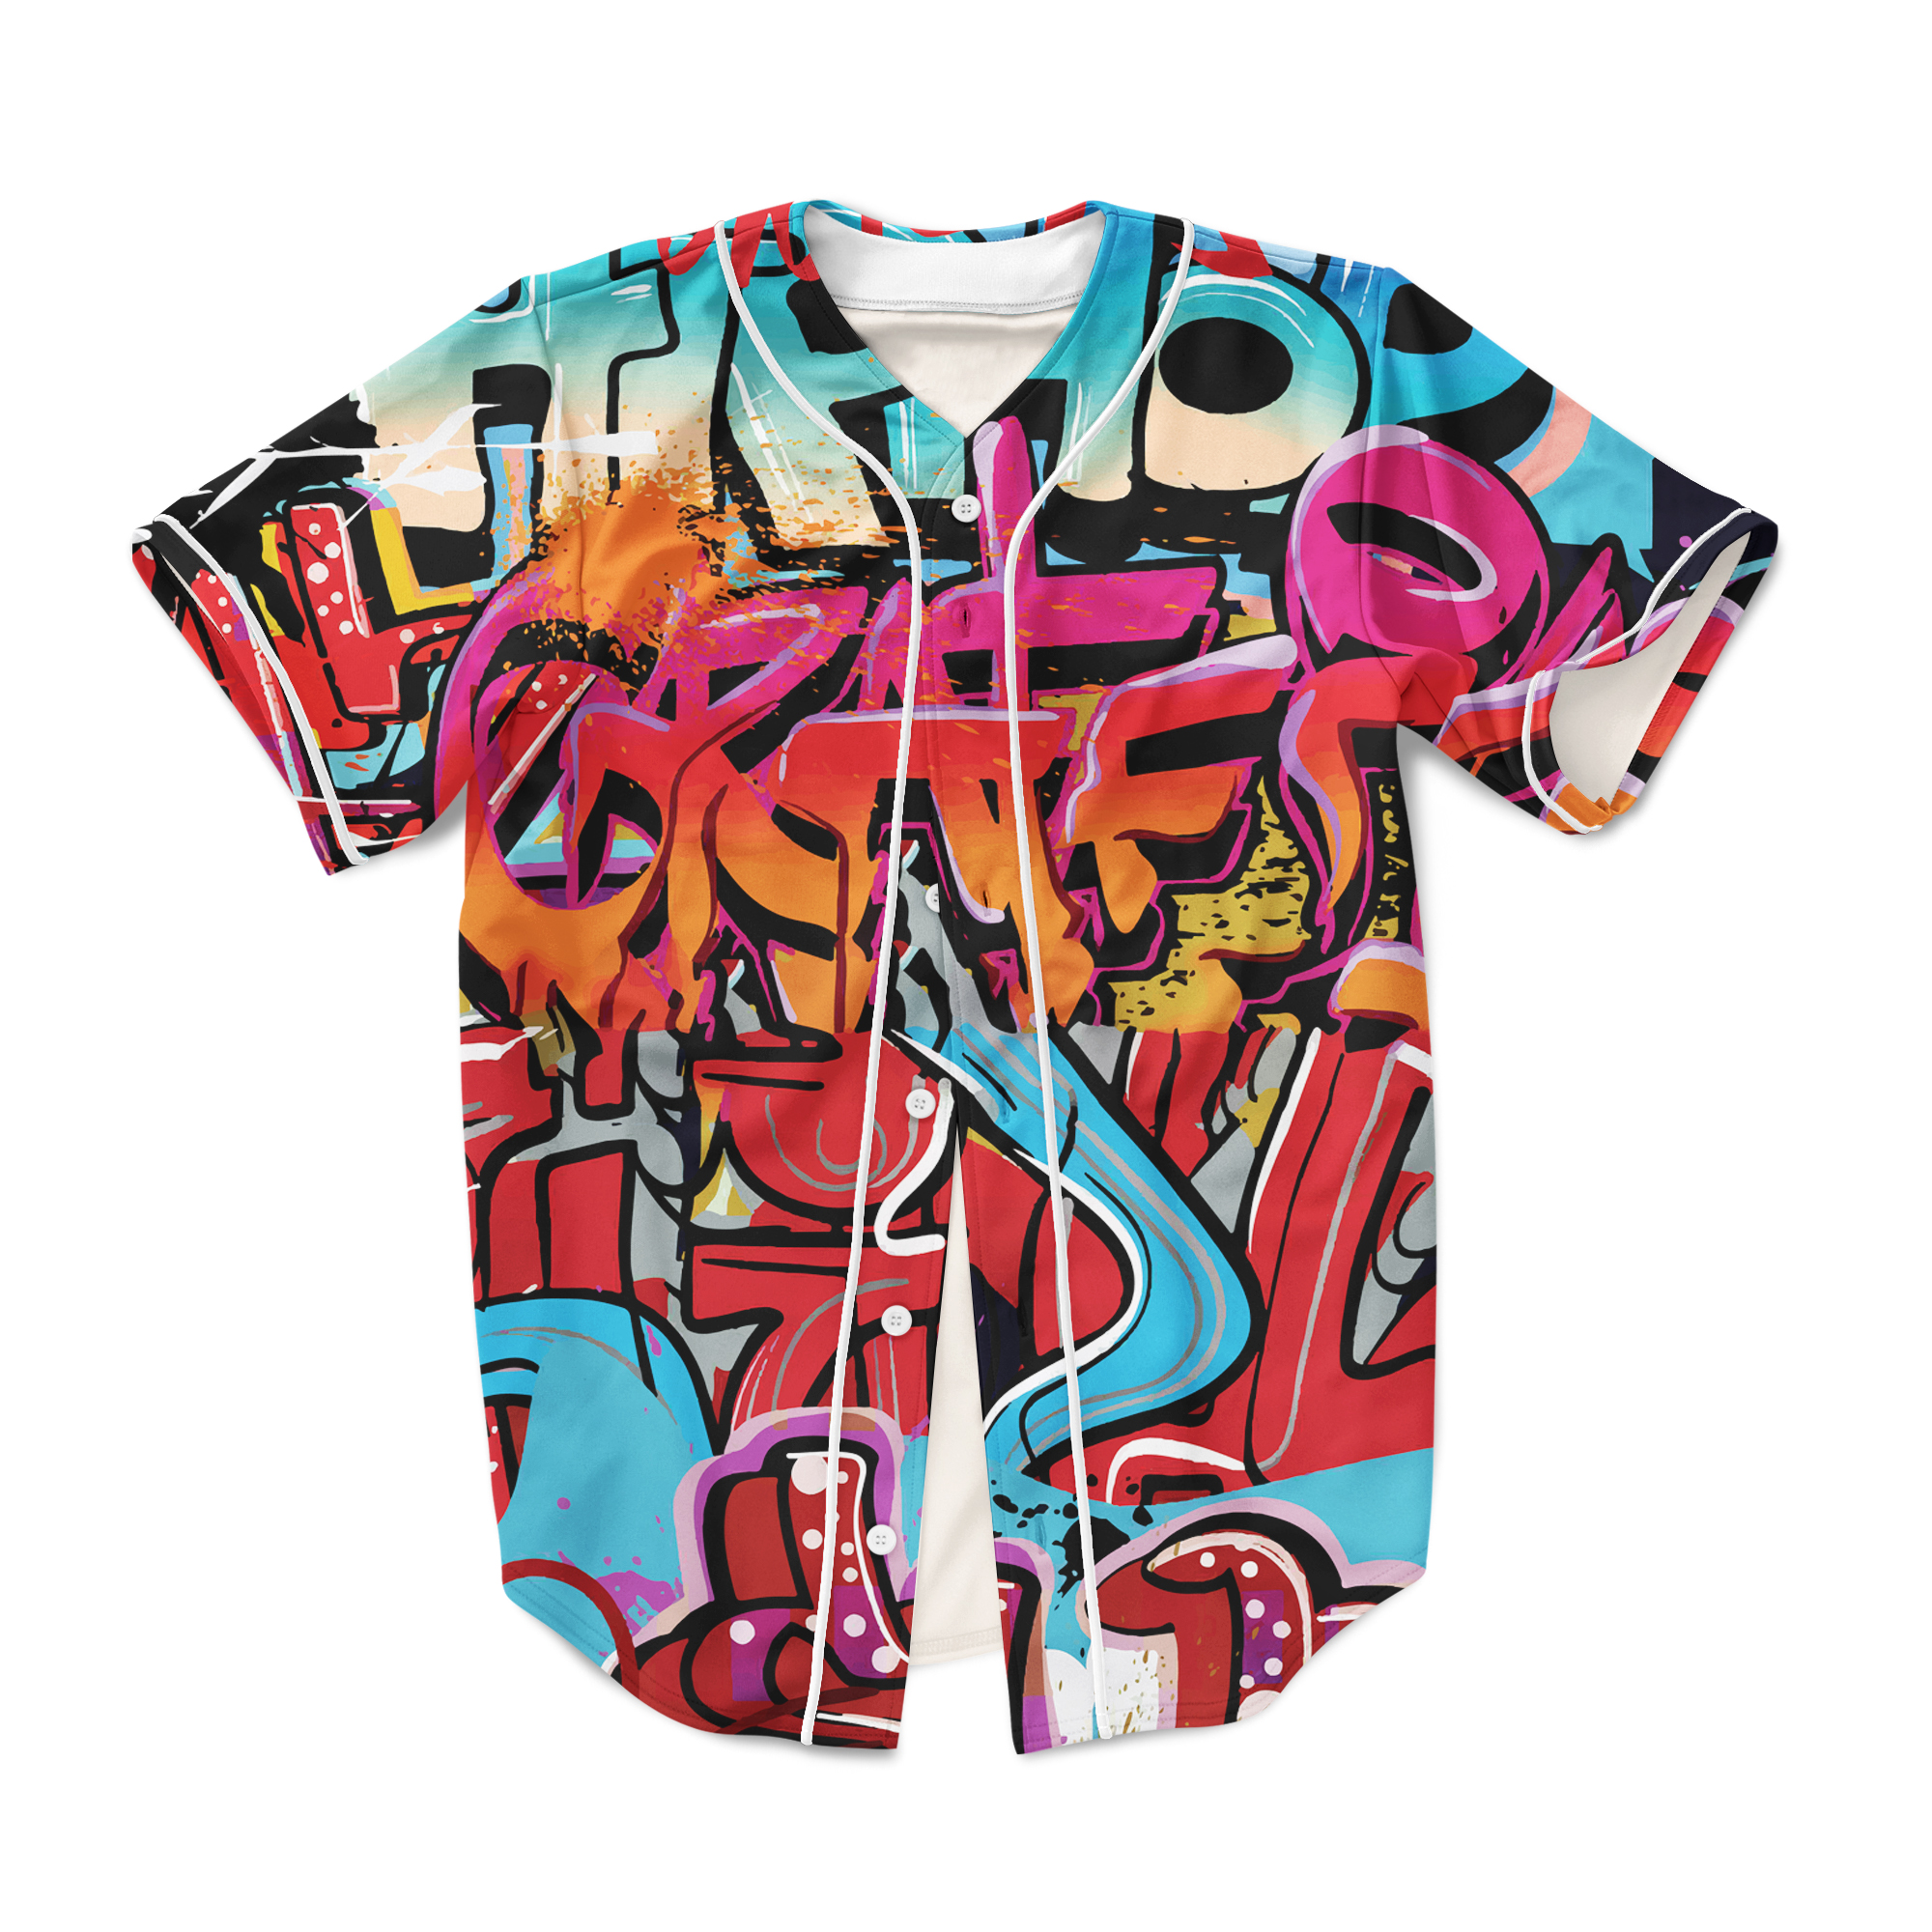 Graffiti 90s clothing baseball jersey custom made fashion 3d sublimation print plus size